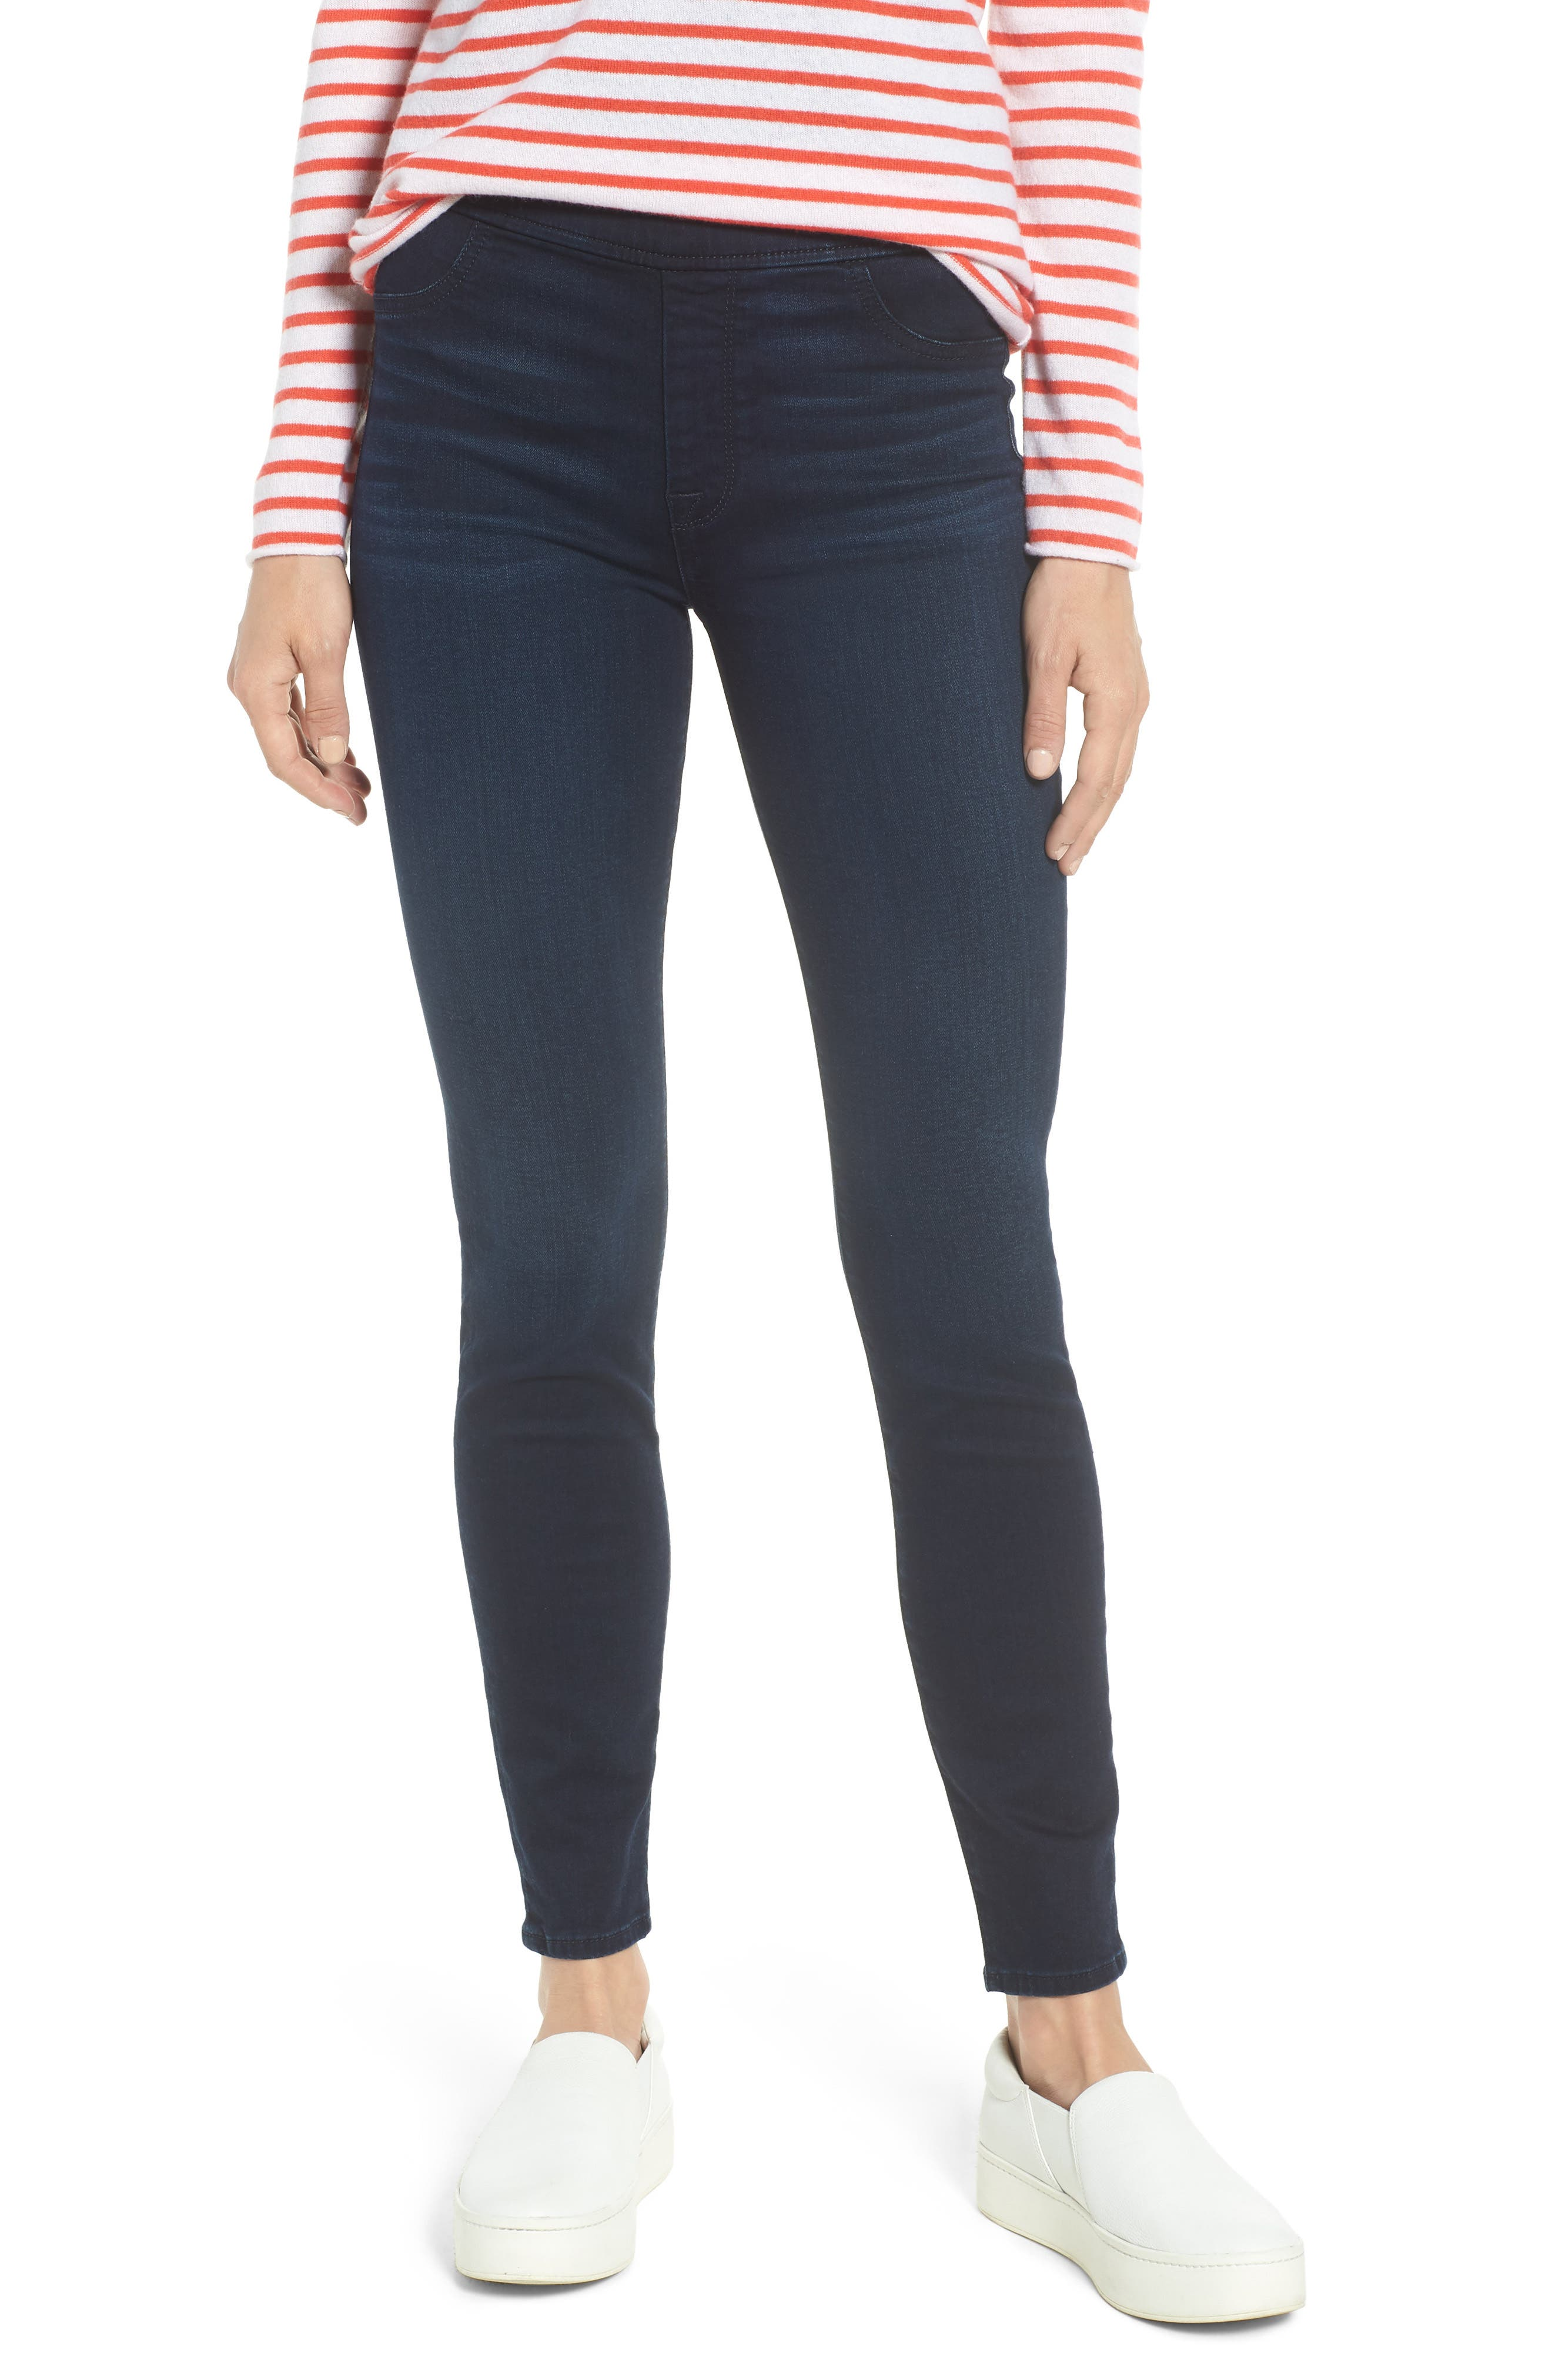 JEN7 BY 7 FOR ALL MANKIND Comfort Skinny Denim Leggings, Main, color, RICHE TOUCH BLUE/BLACK